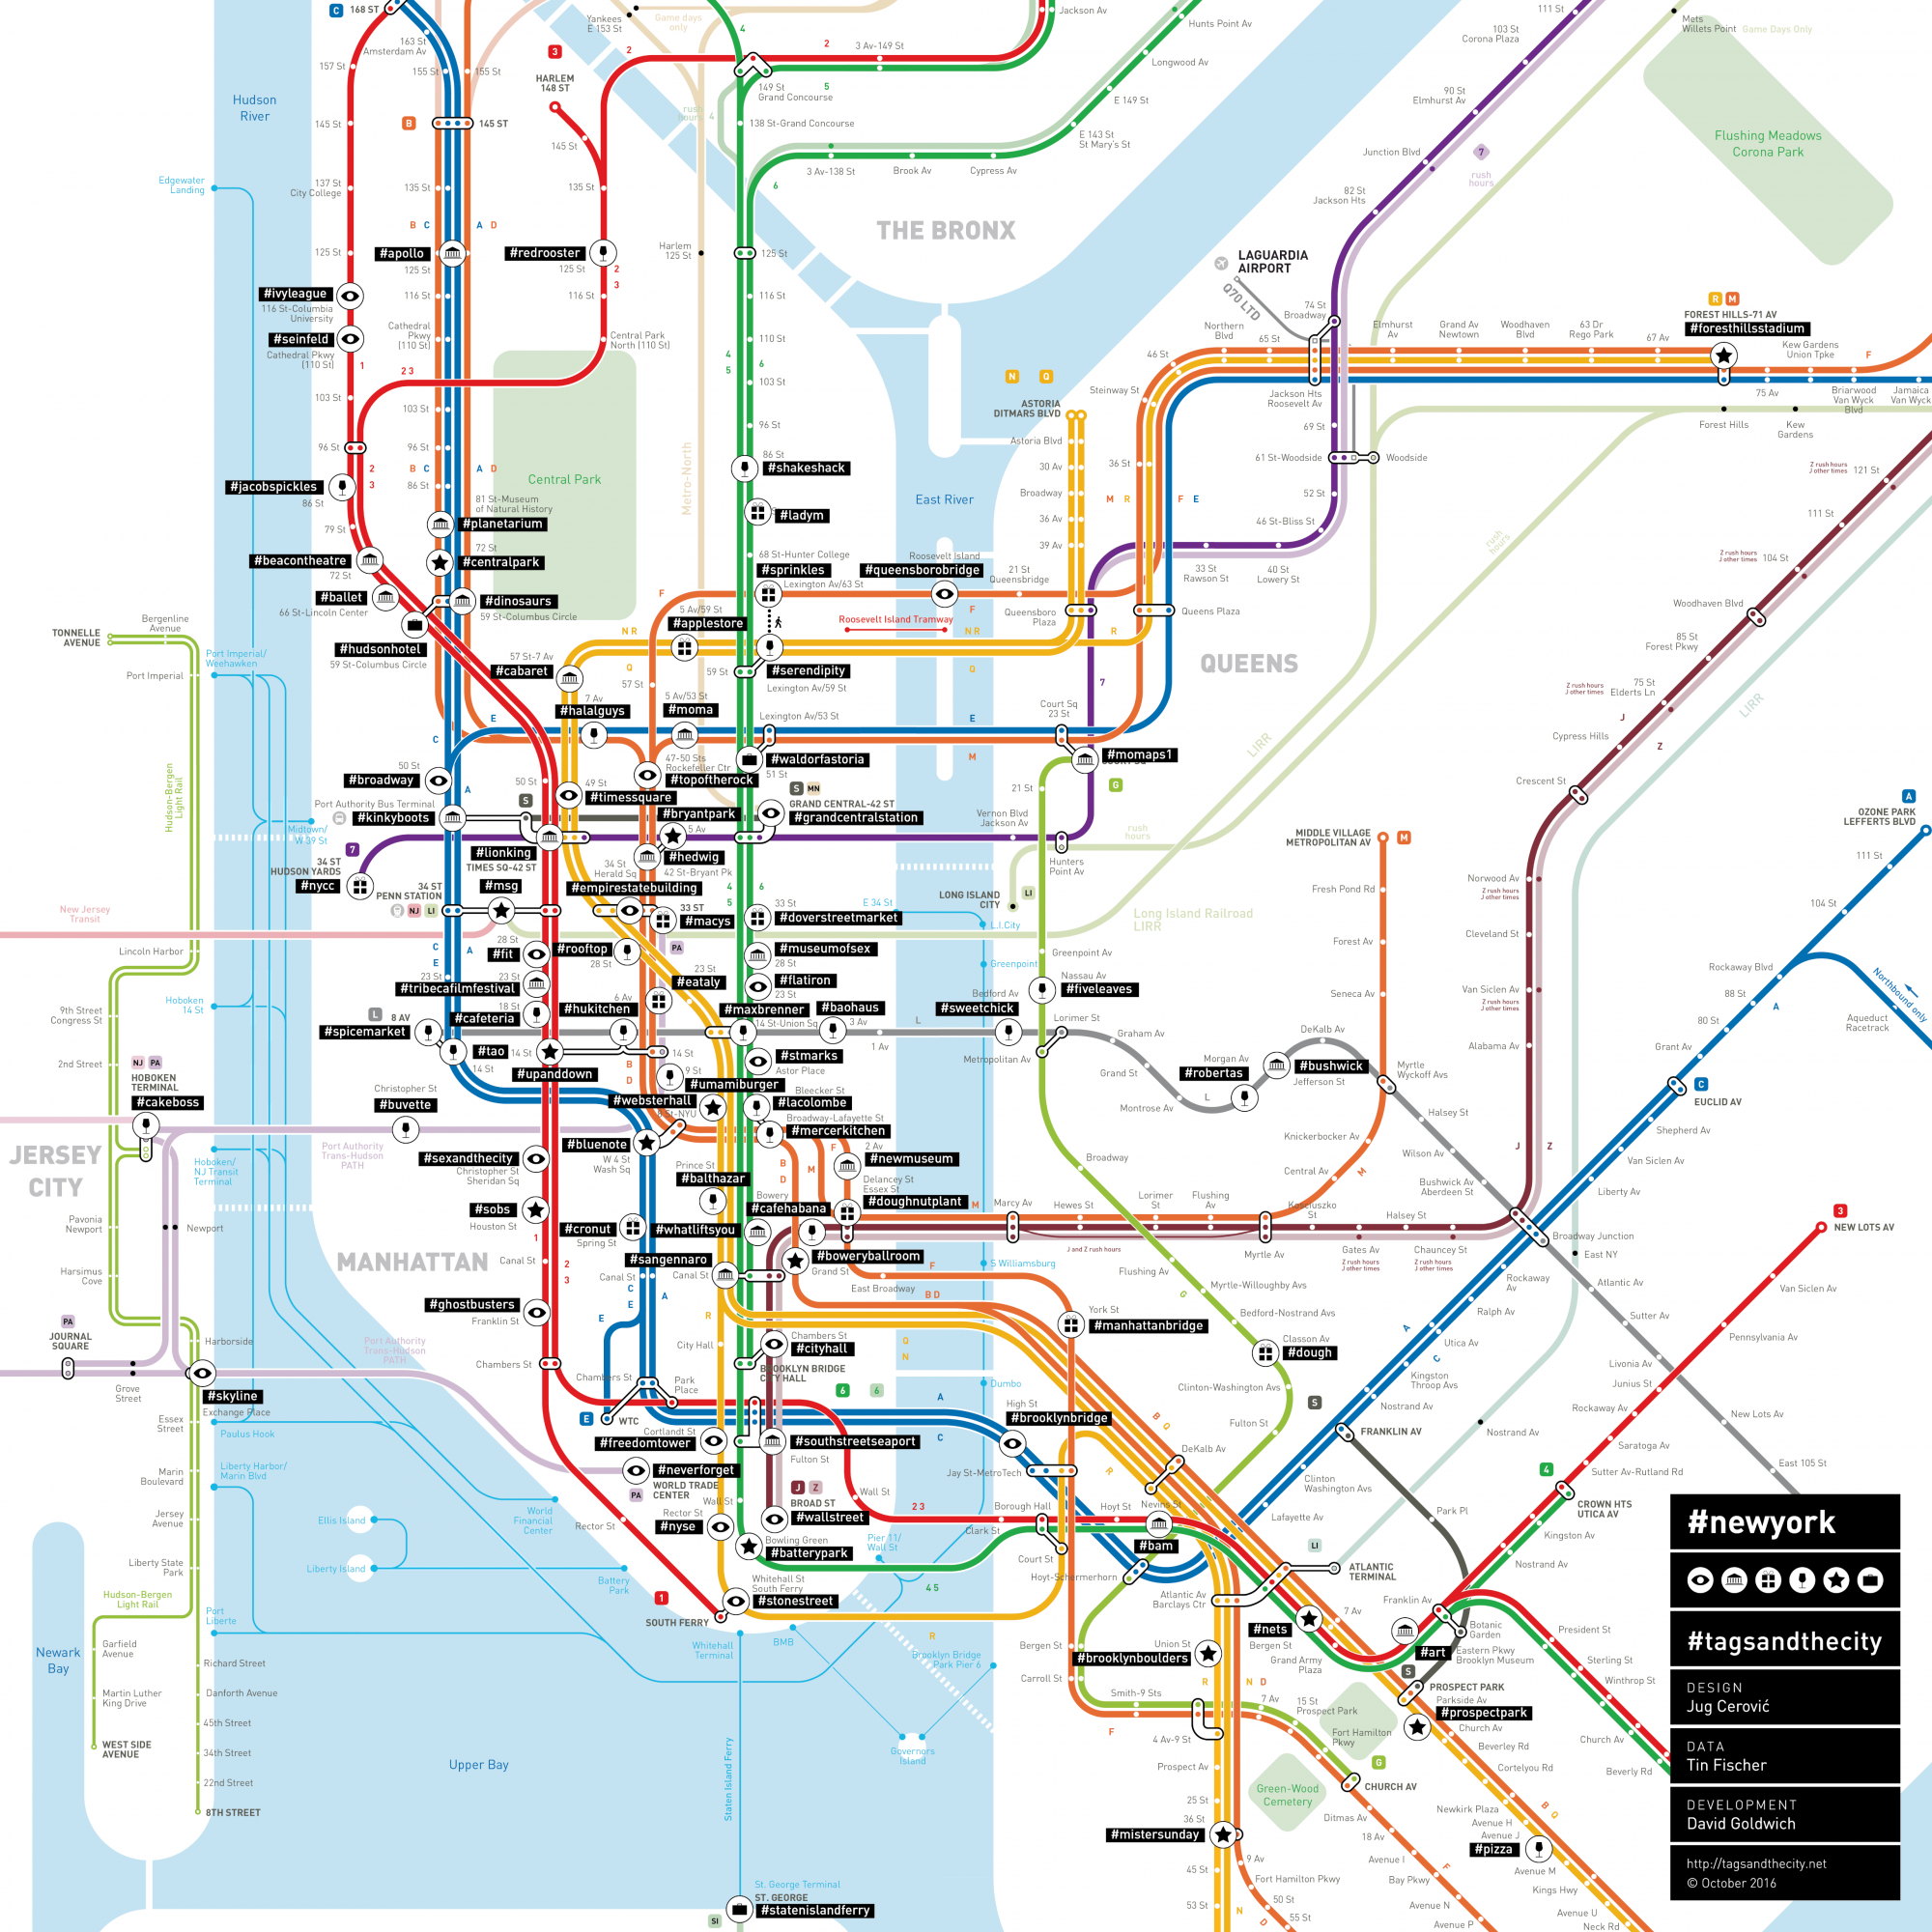 New York City Subway Map January 2001.Mapping Nyc Subway Stops According To Their Most Popular Instagram